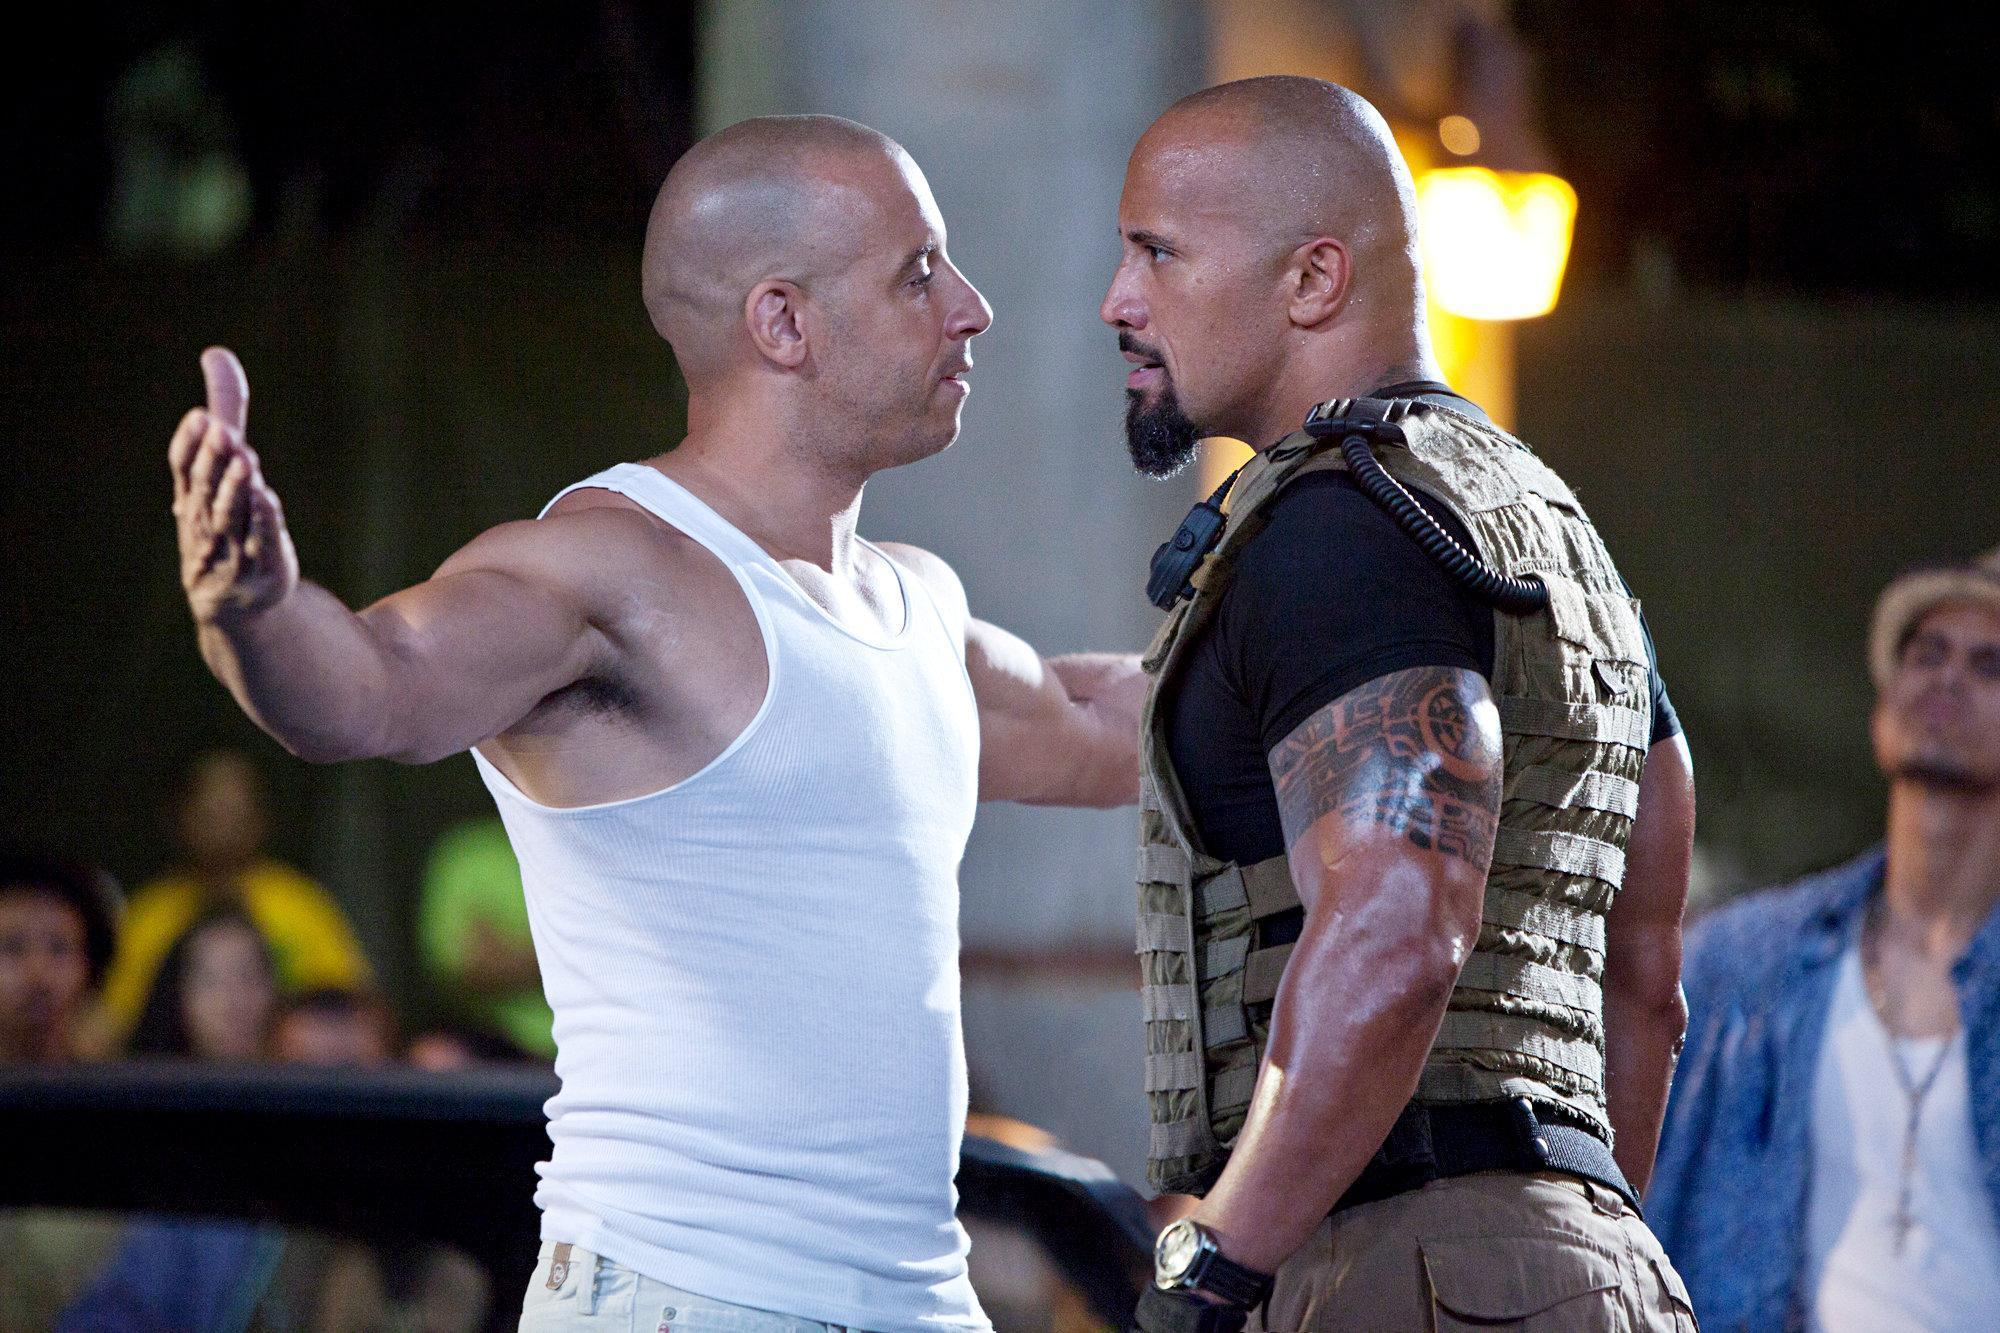 'What actually happened' between The Rock and Vin Diesel